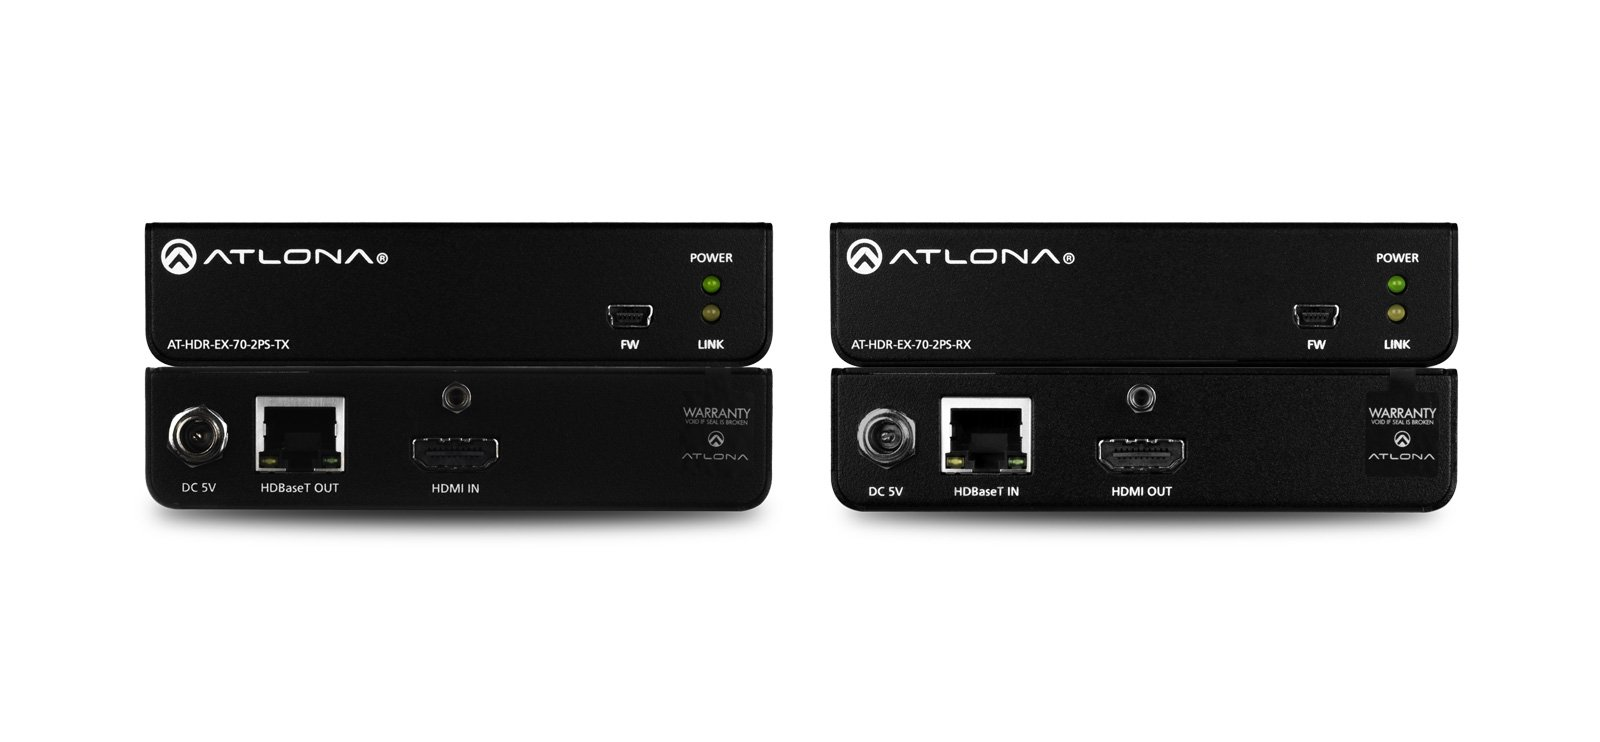 Atlona 4K HDR HDMI Over HDBaseT TX/RX Kit AT-HDR-EX-70-2PS